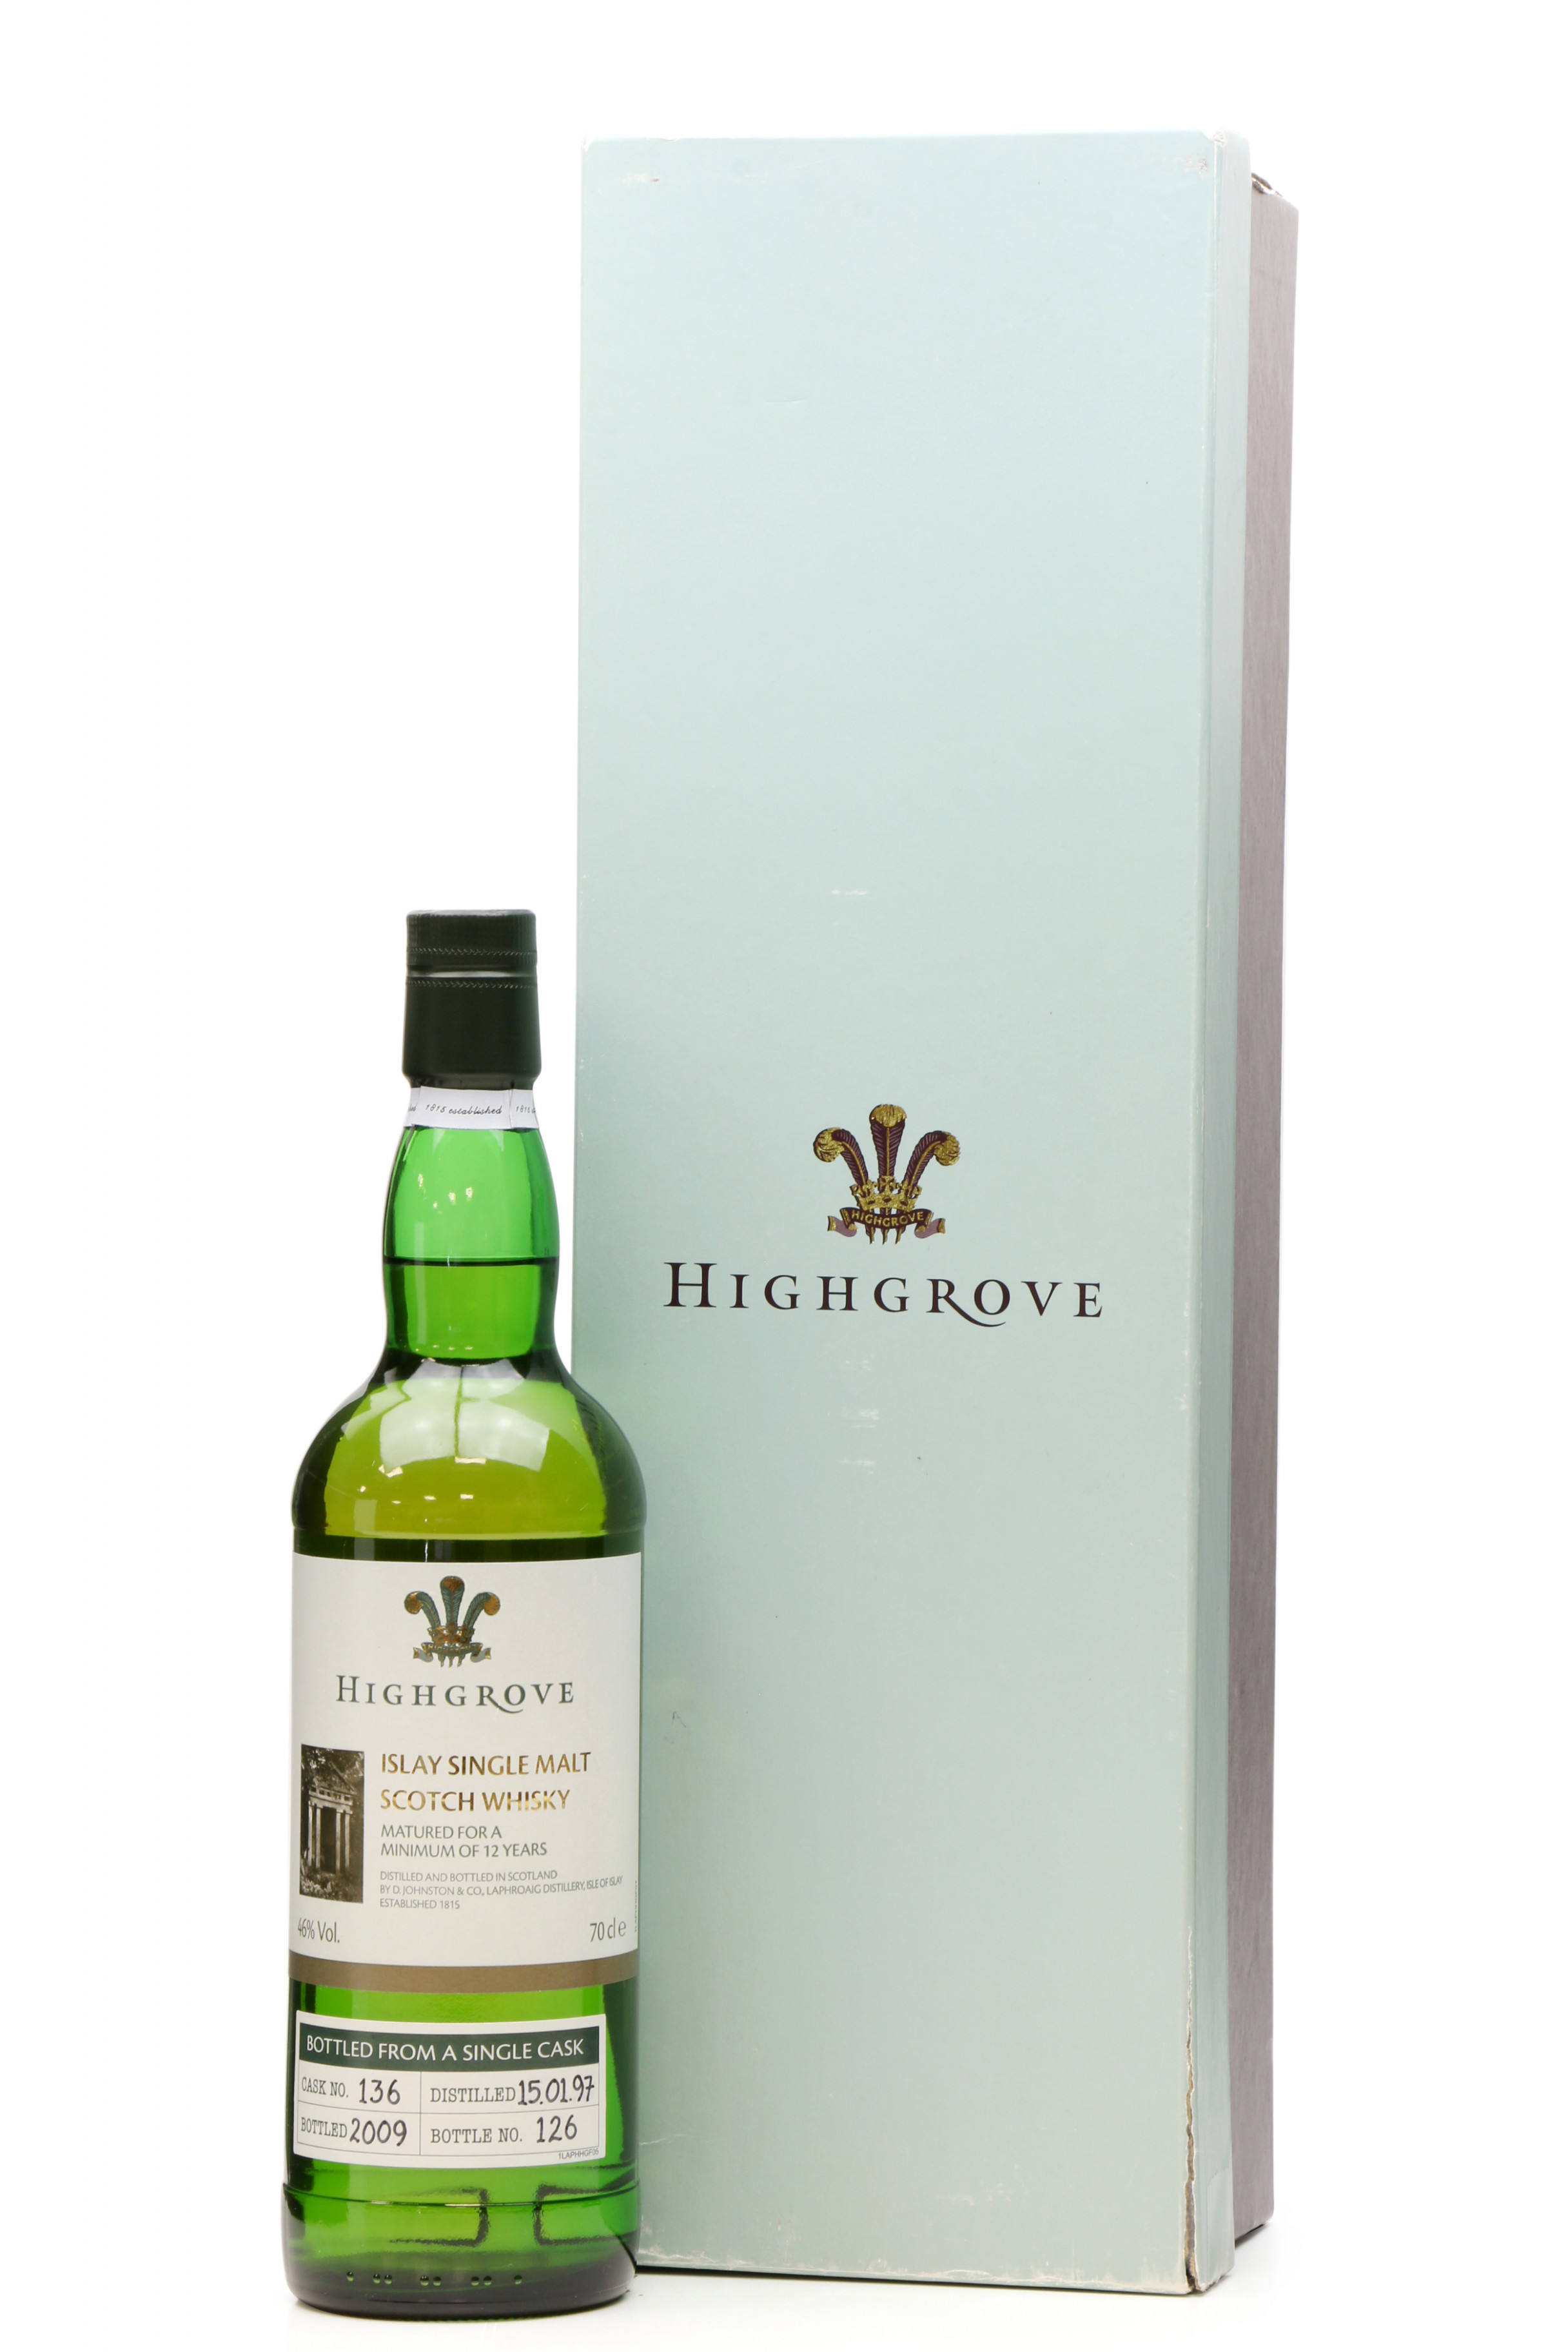 Laphroaig 12 Years Old 1997 - 2009 Highgrove Single Cask No